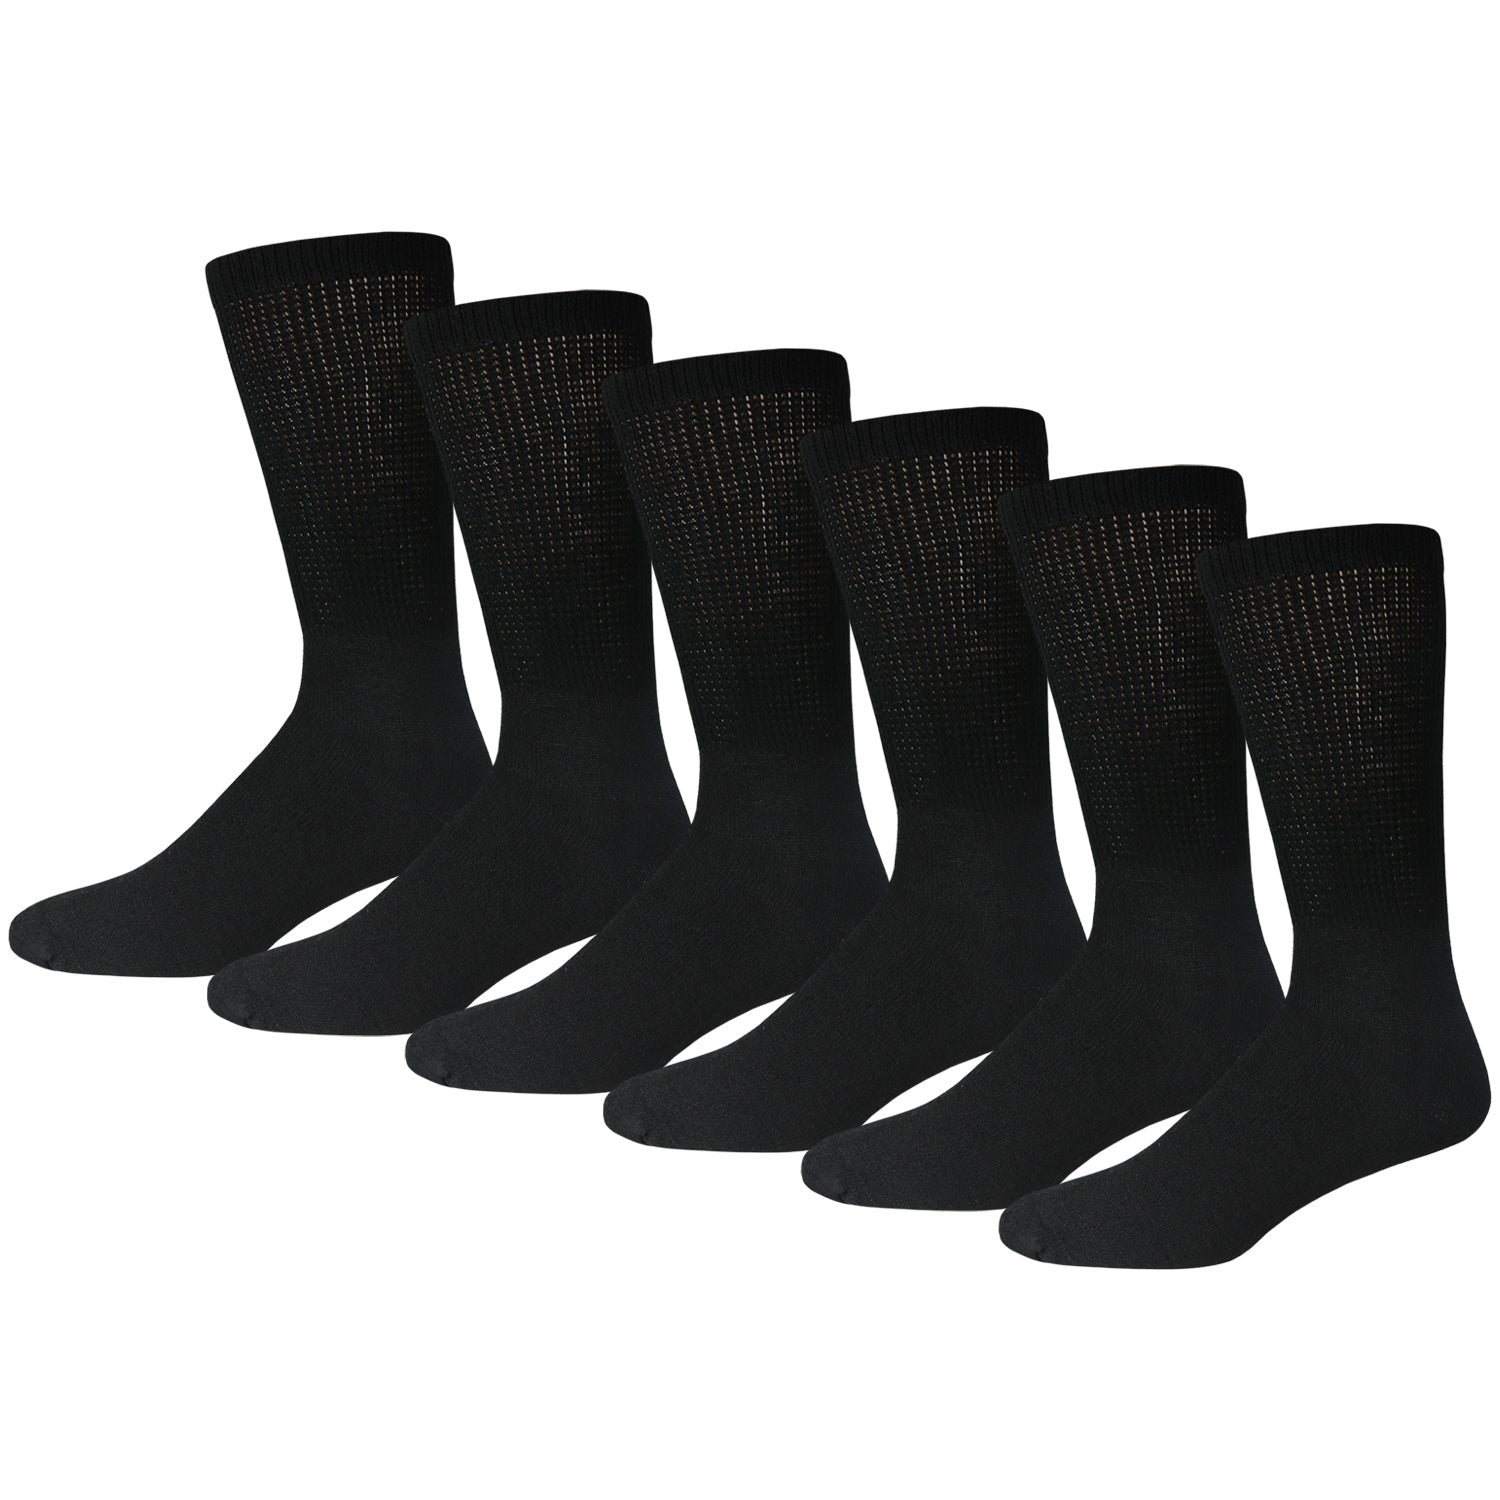 Black Diabetic Cotton Diabetic Crew Socks With Loose Top 6 Pack